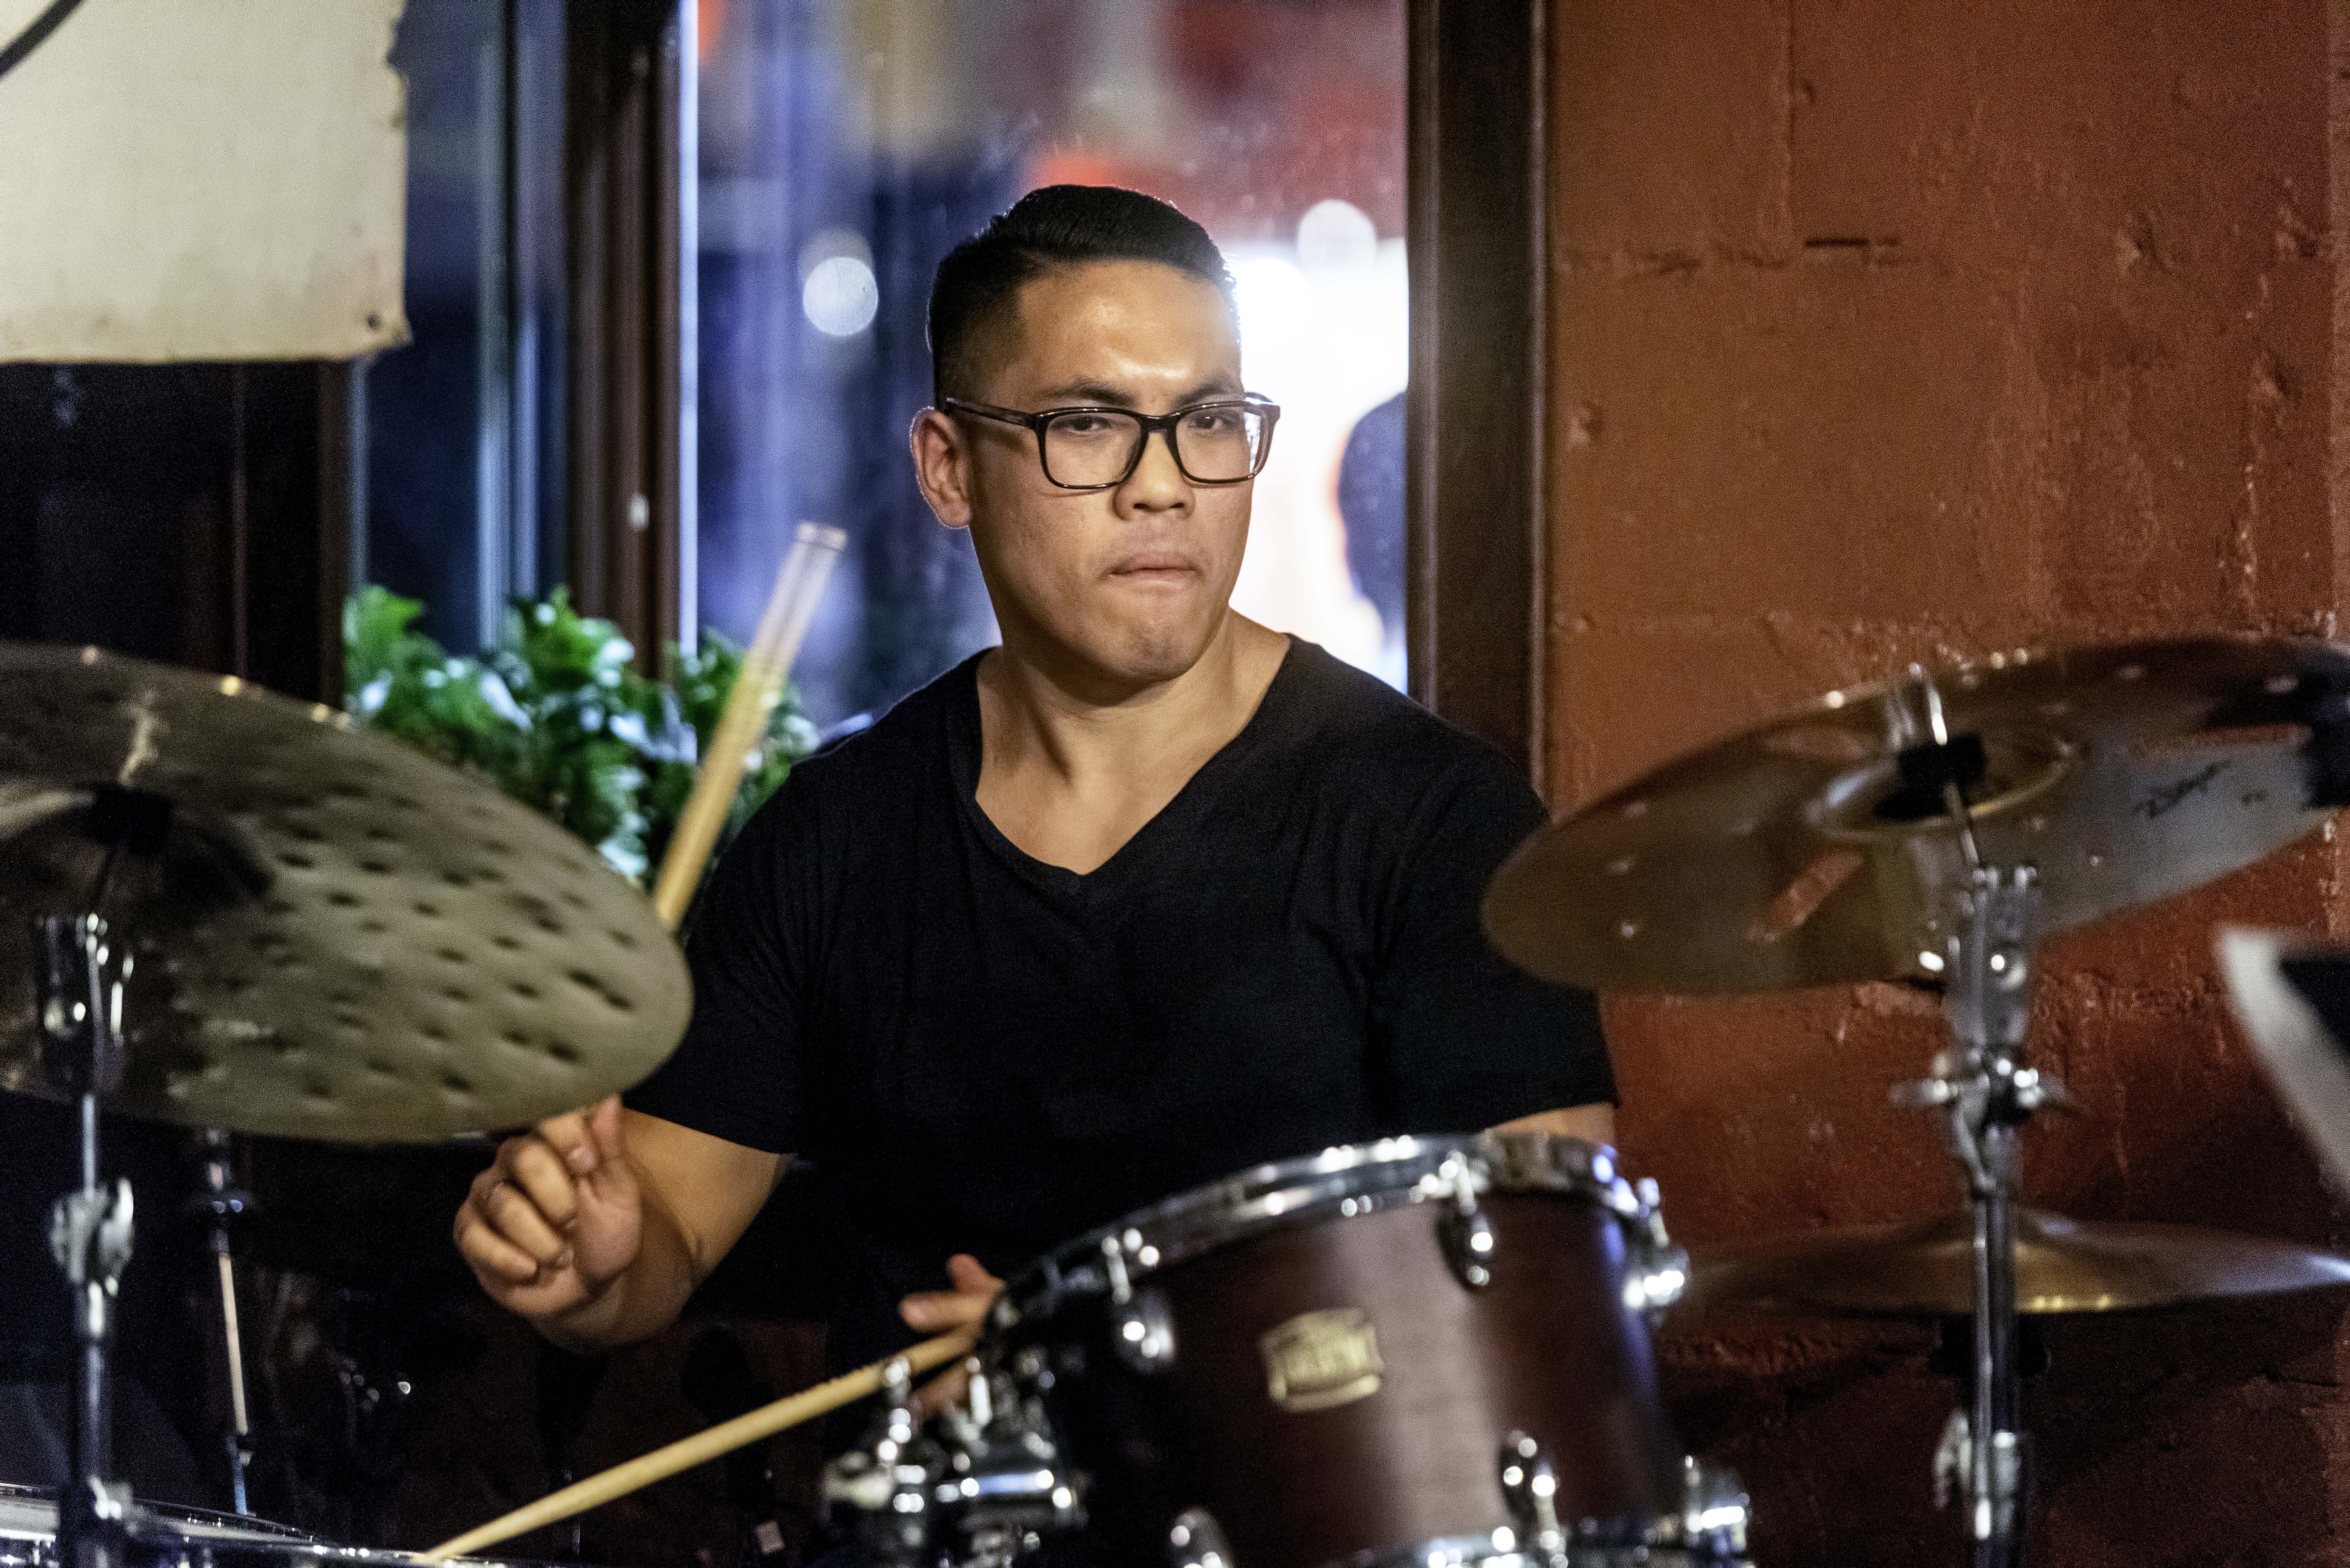 Anthony Fung with David Binney at the Rex Jazz Bar at the Toronto Jazz Festival 2019